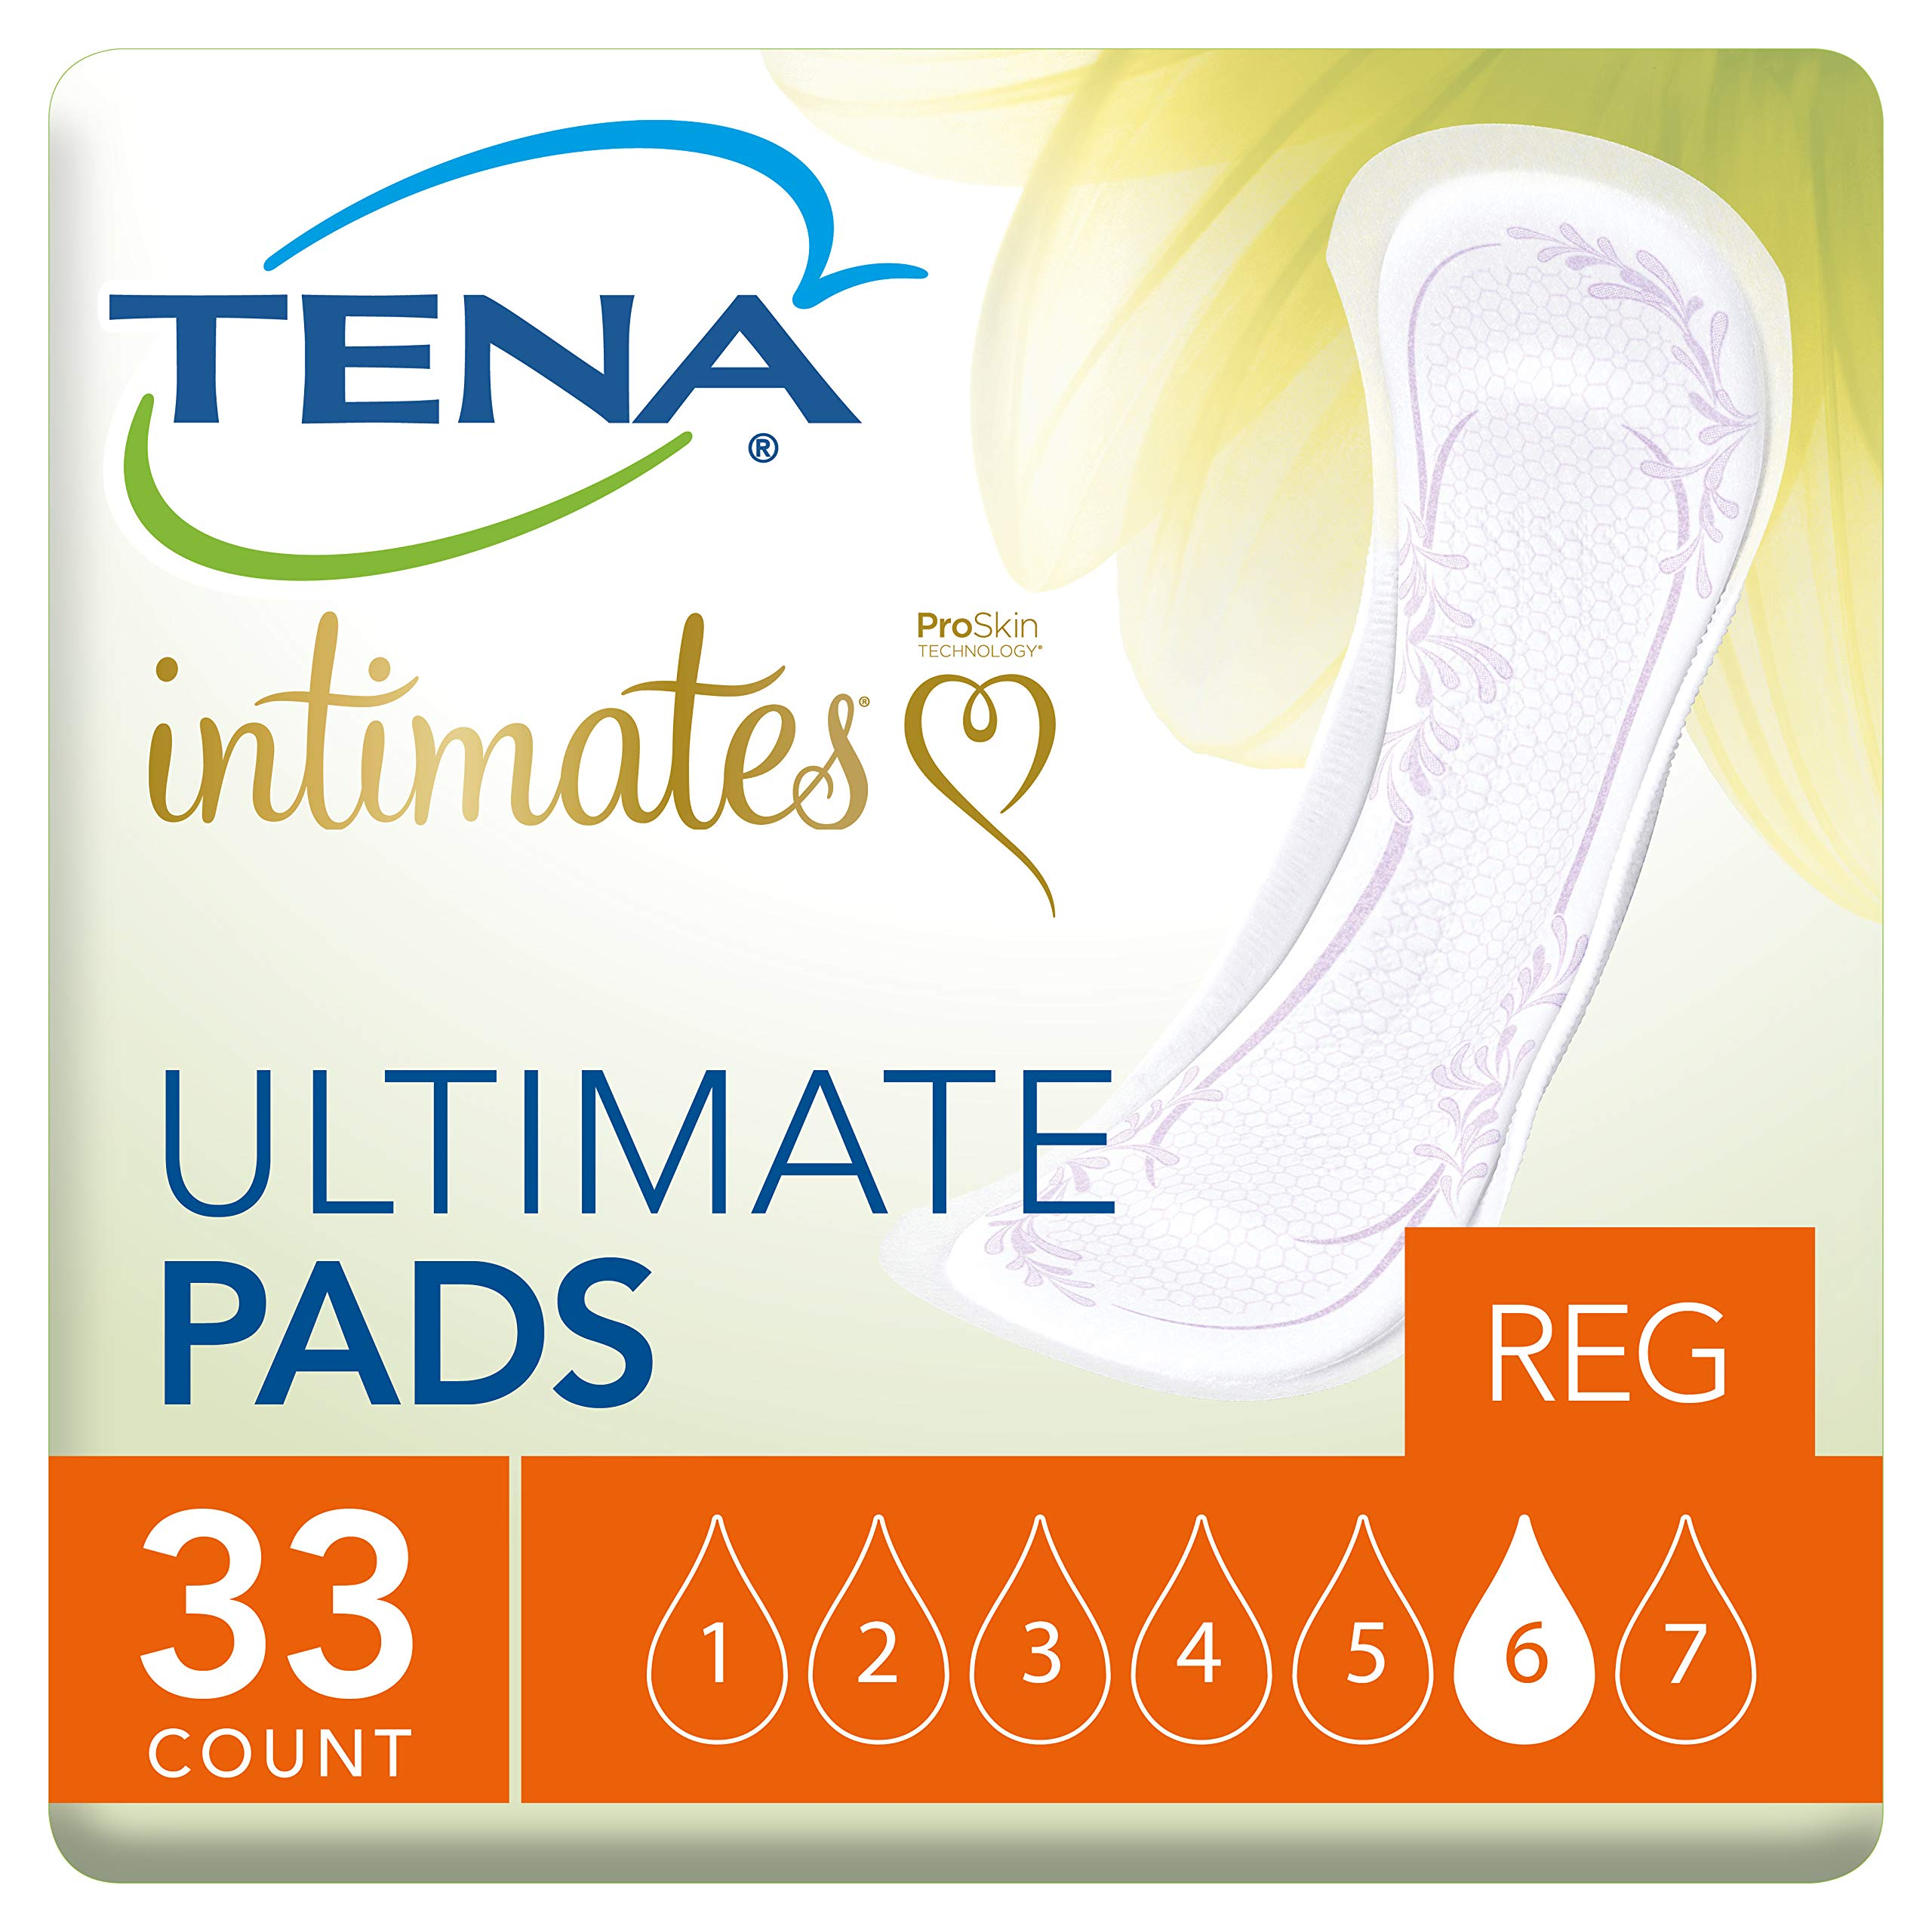 Tena Intimates Ultimate Incontinence Pad for Women, 33 Count, Pack of 3